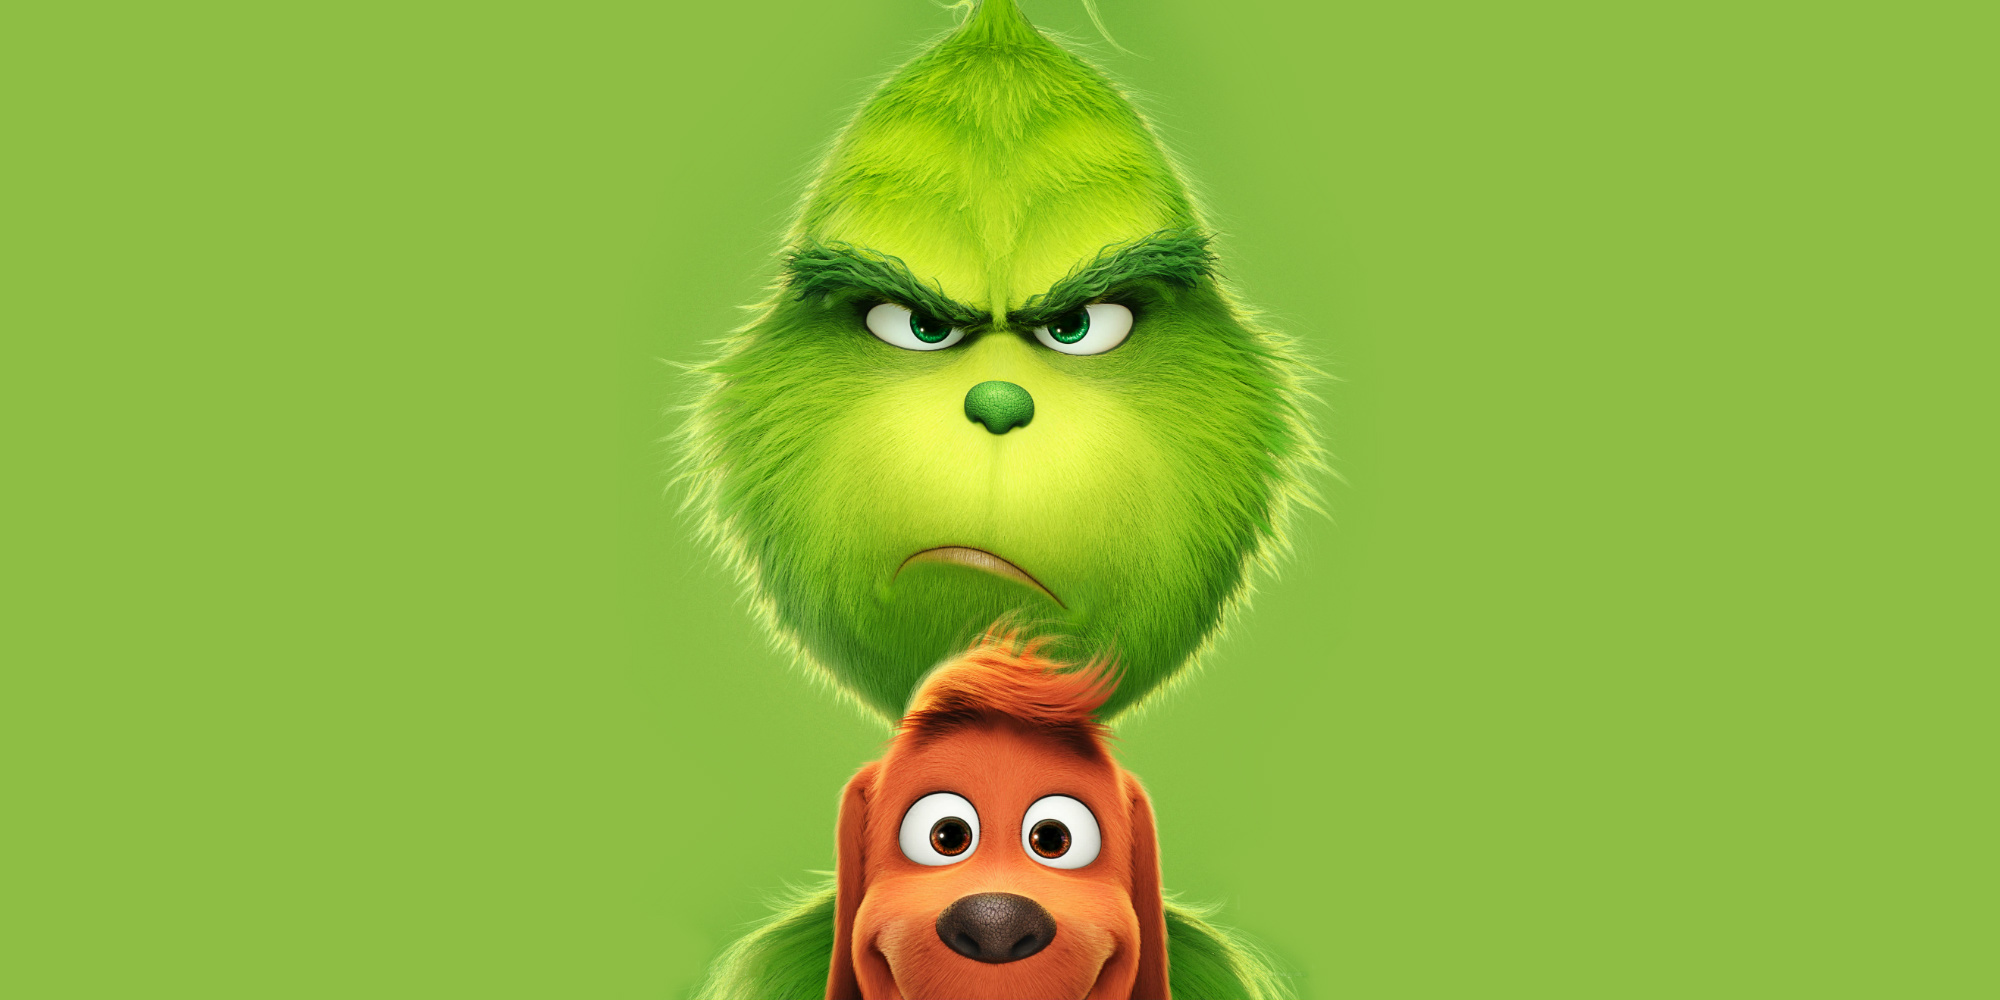 The-Grinch-Max-Movie-Trailer-Poster